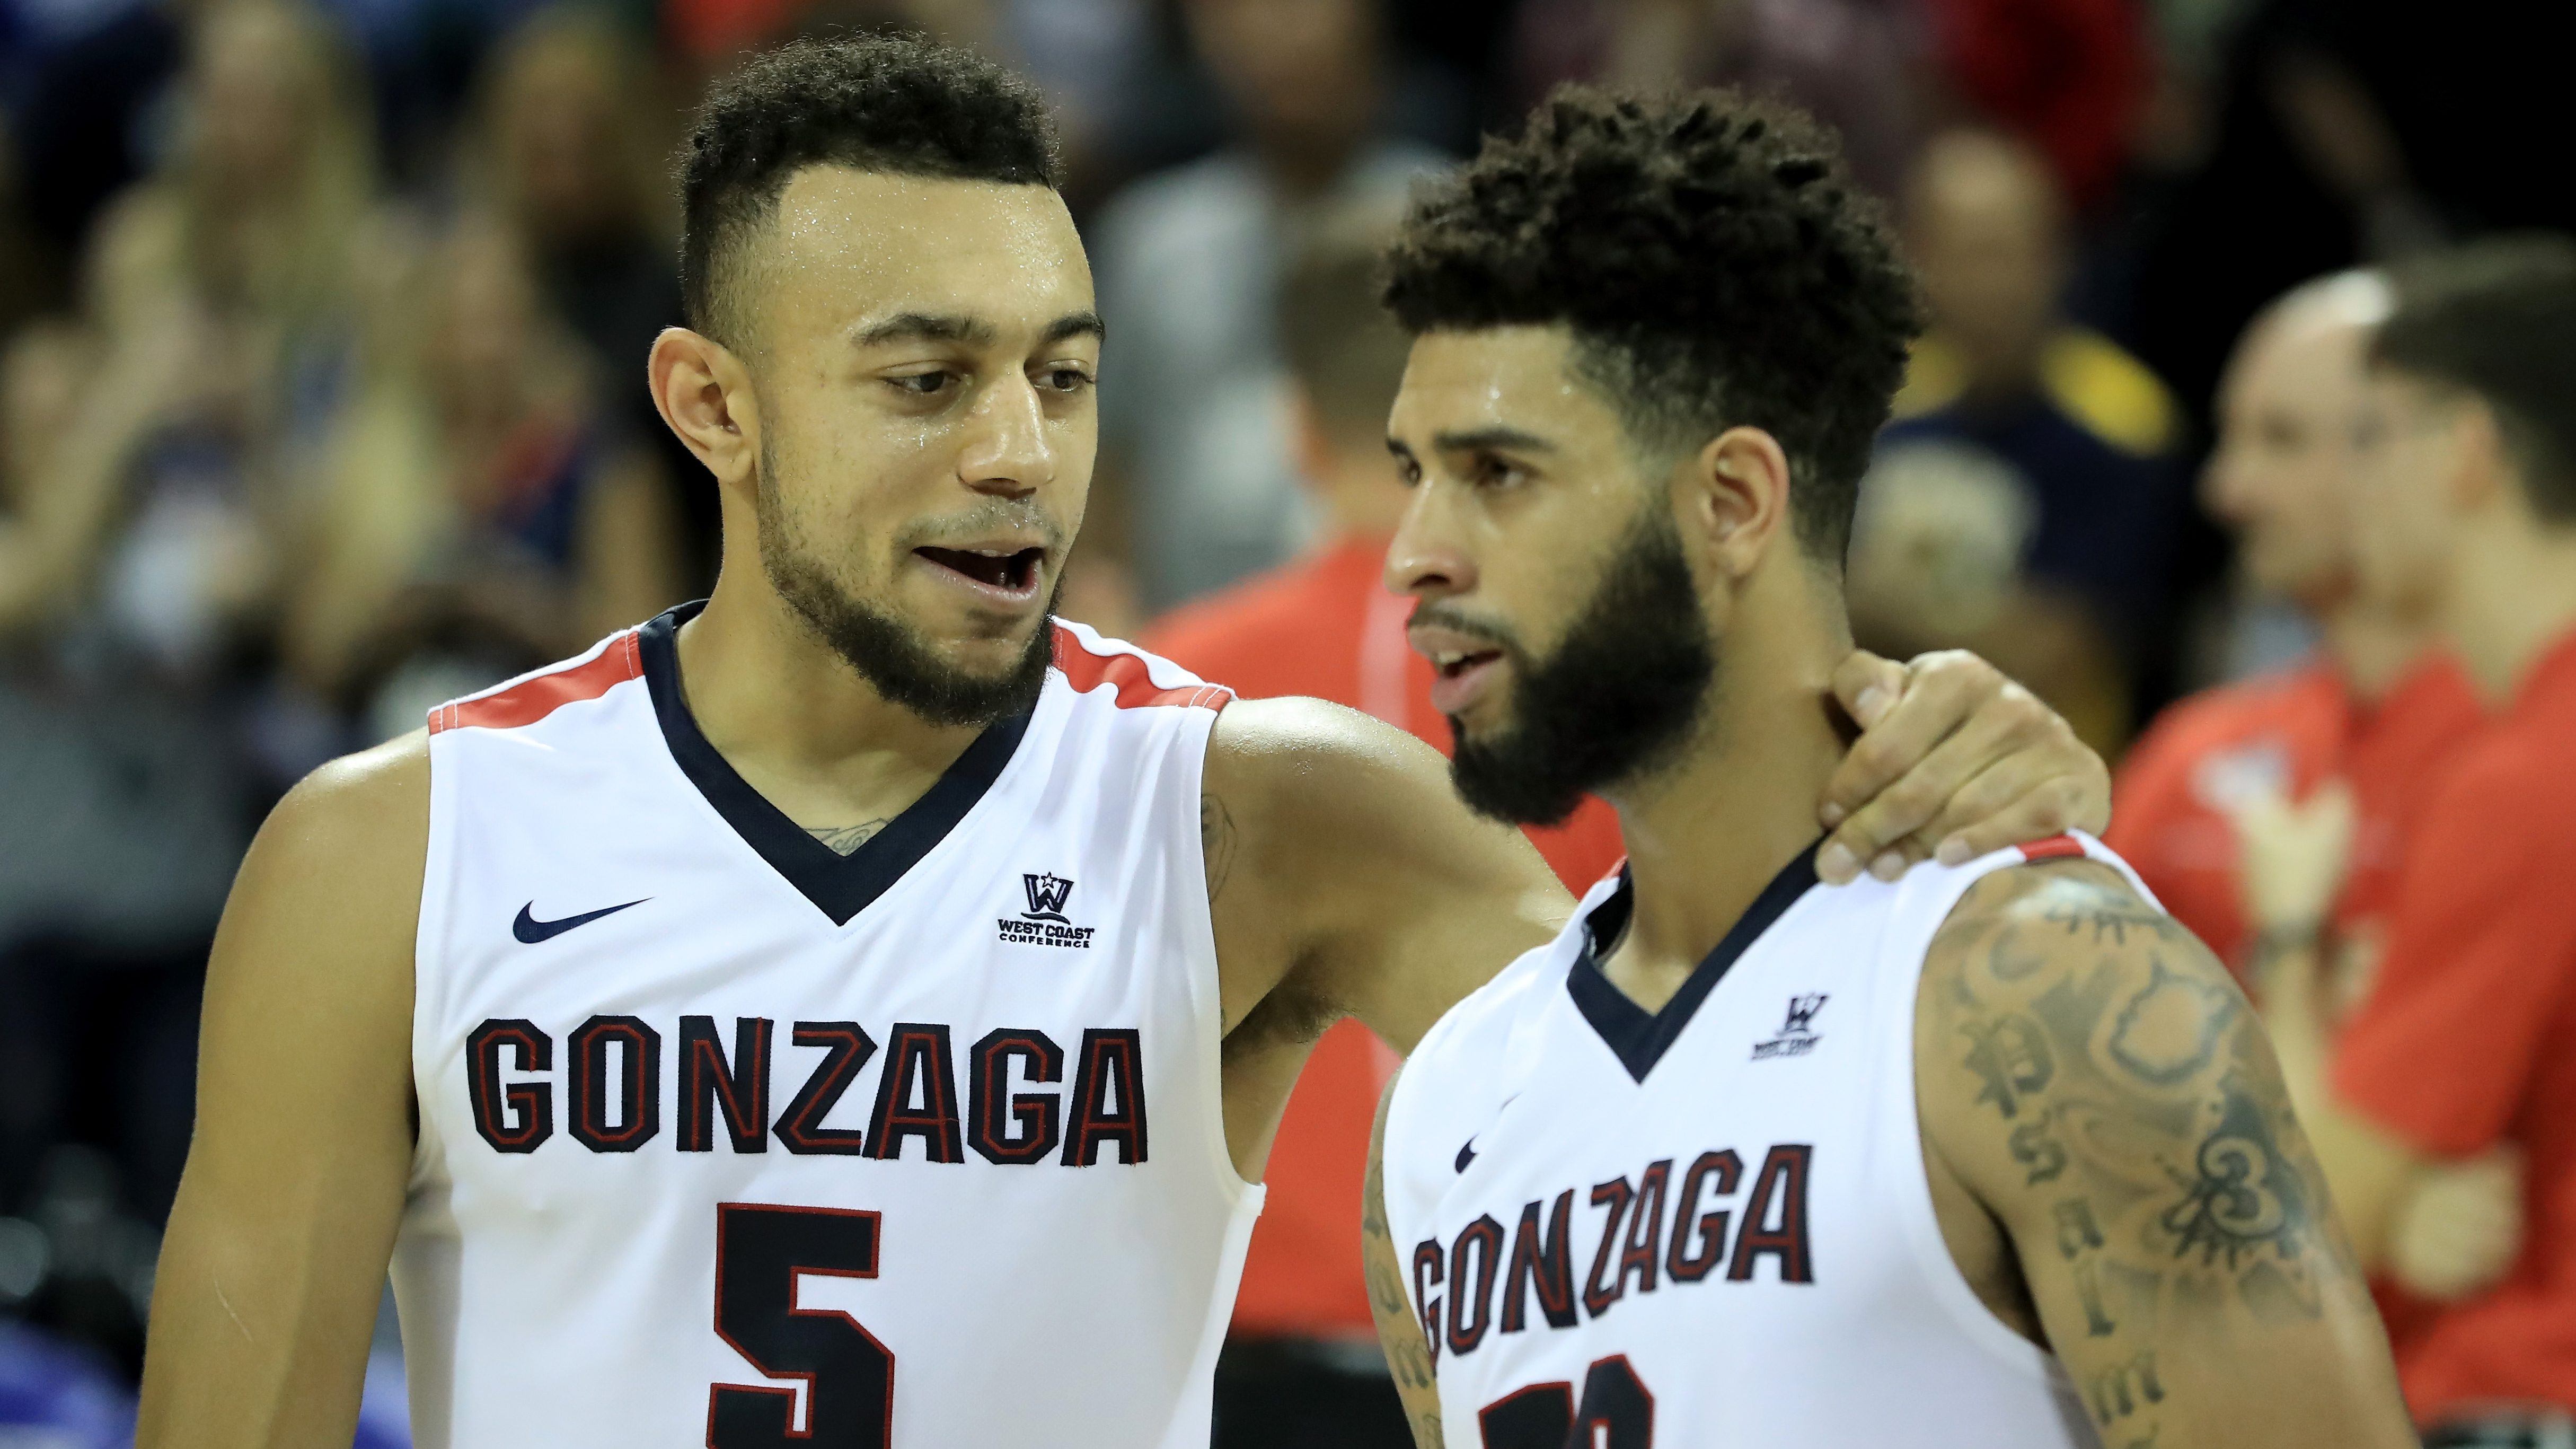 ORLANDO, FL - NOVEMBER 27: Nigel Williams-Goss #5 and Josh Perkins #13 of the Gonzaga Bulldogs celebrate a victory over the Iowa State Cyclones at HP Field House on November 27, 2016 in Orlando, Florida. (Photo by Sam Greenwood/Getty Images)